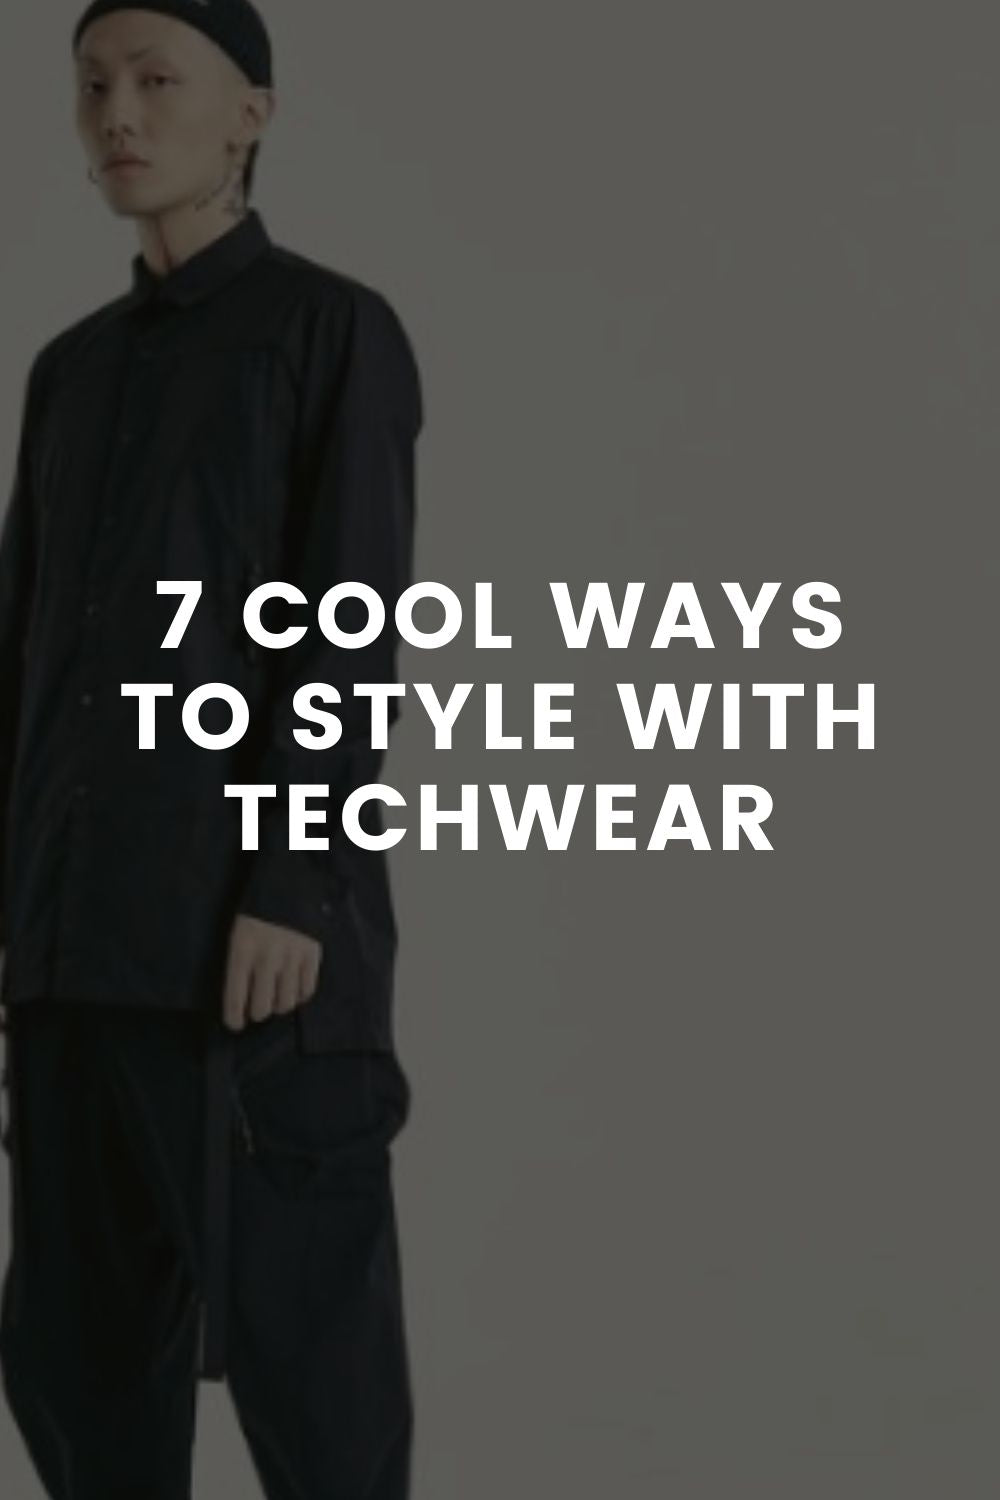 7 Cool Ways to Style with Techwear